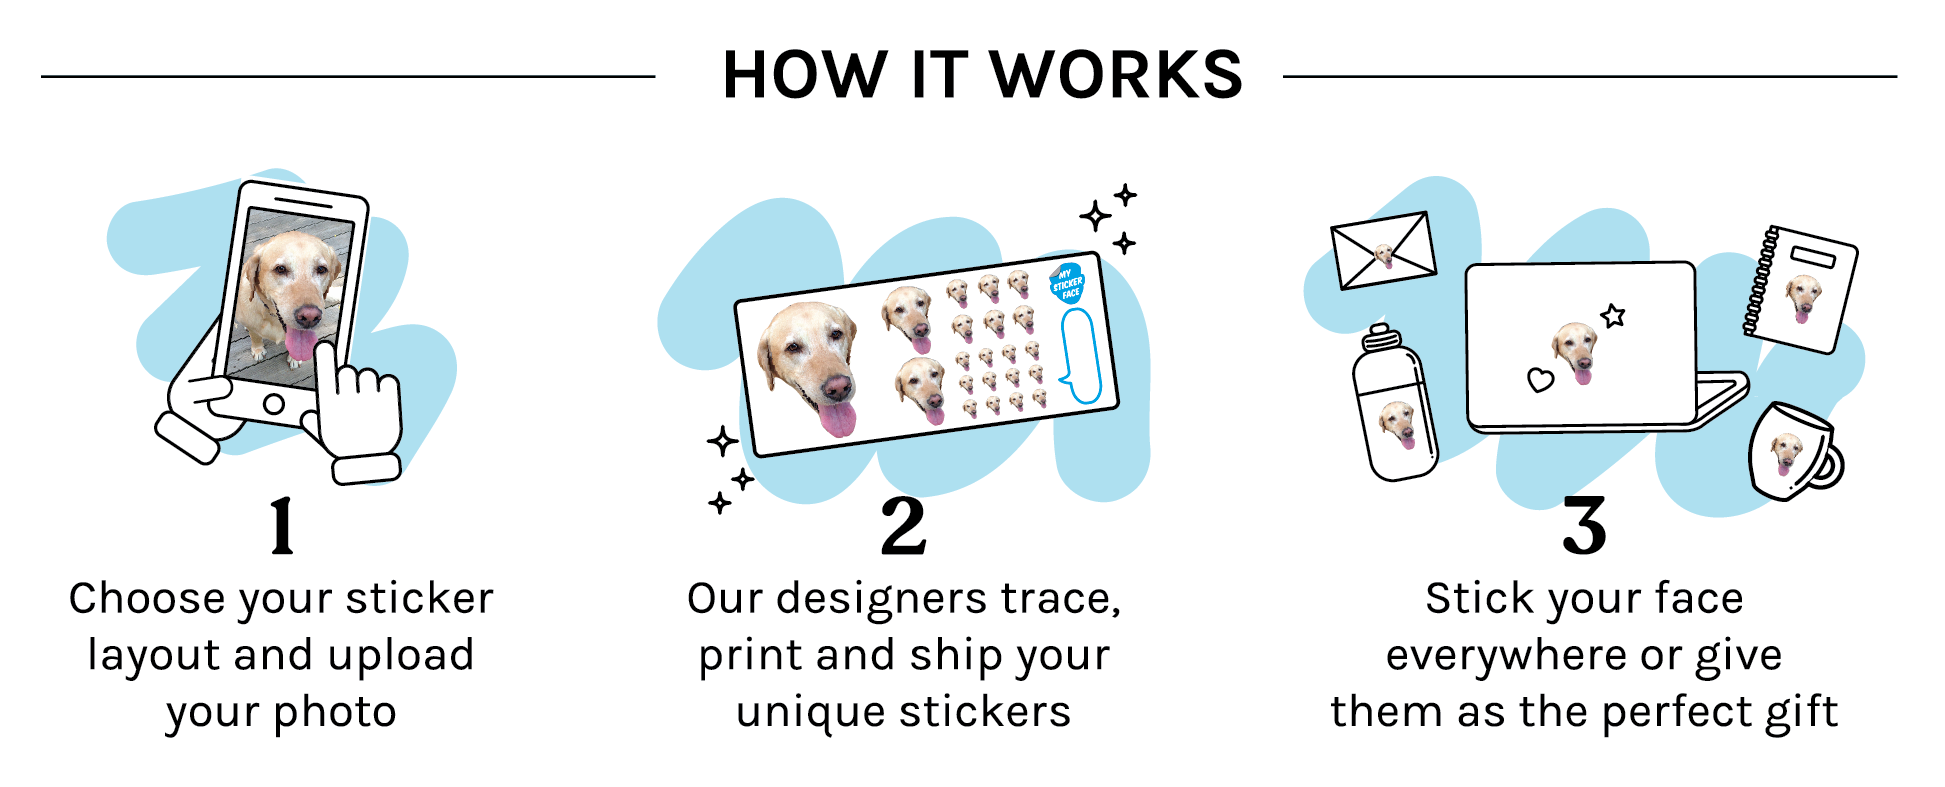 mystickerfacehowto.png